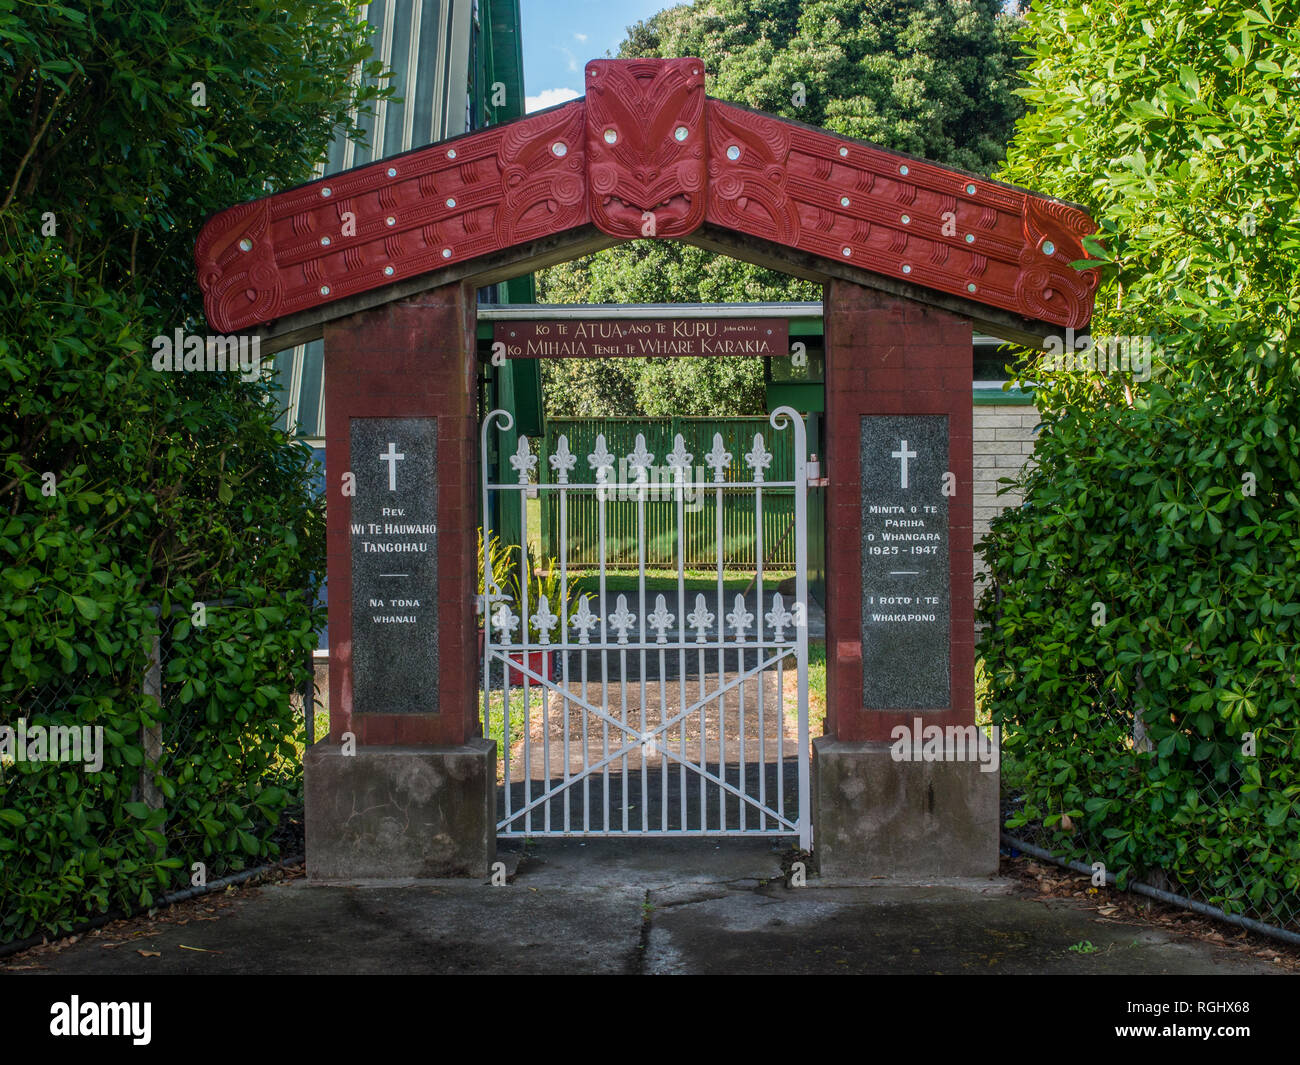 Gateway with Maori carving, Sacred Heart Catholic Church, Tolaga Bay, East Cape, North island, New Zealand - Stock Image